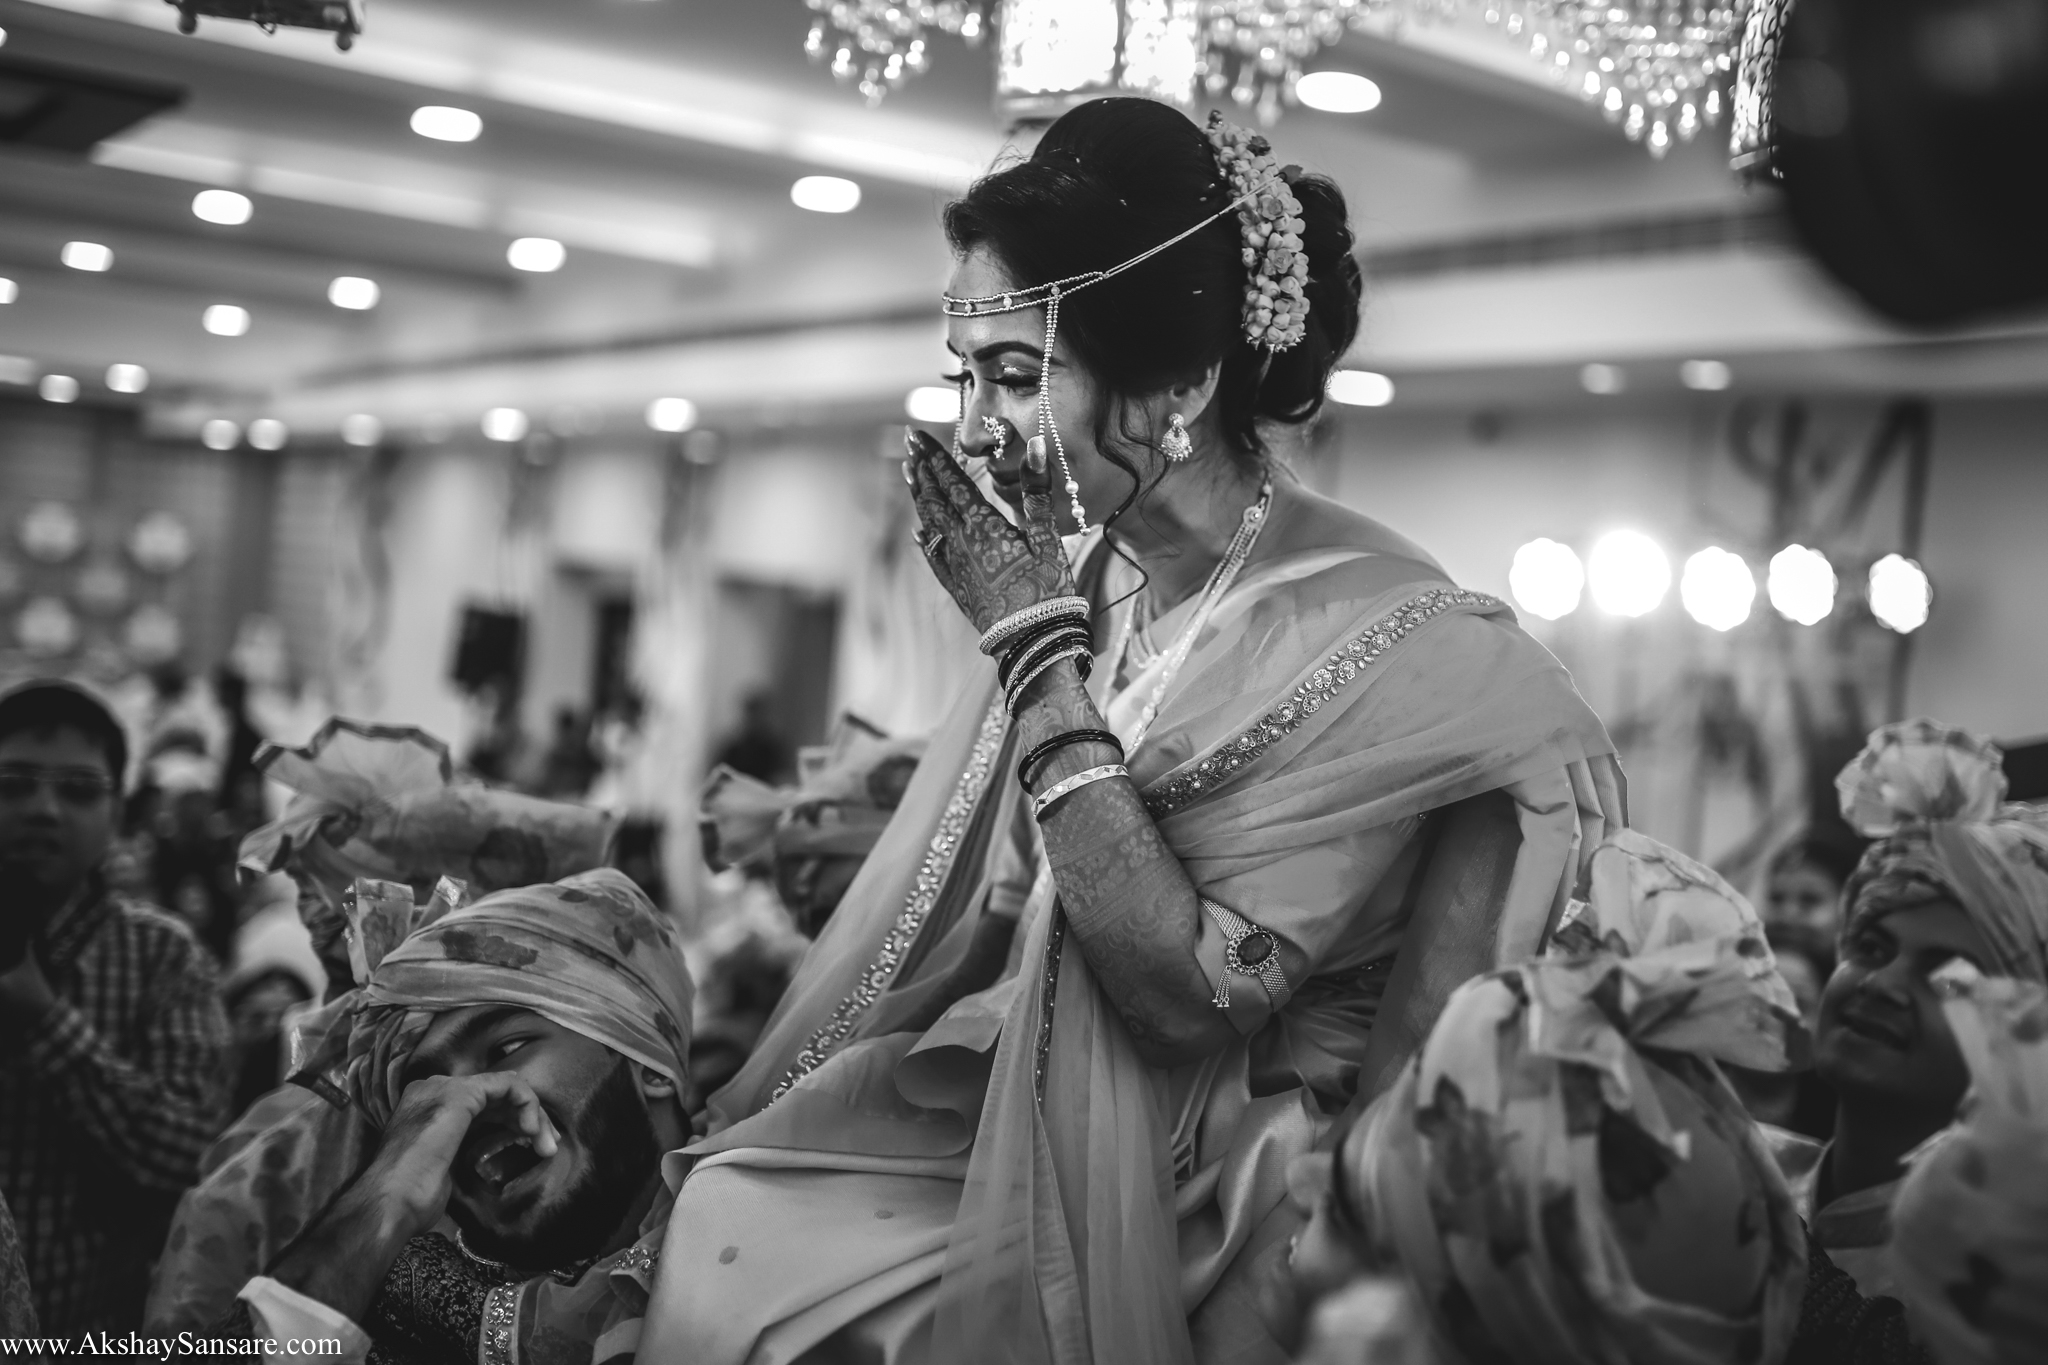 Nupur & Rohan wedding Akshay Sansare Photography best wedding photographer in mumbai India Candid(43).jpg